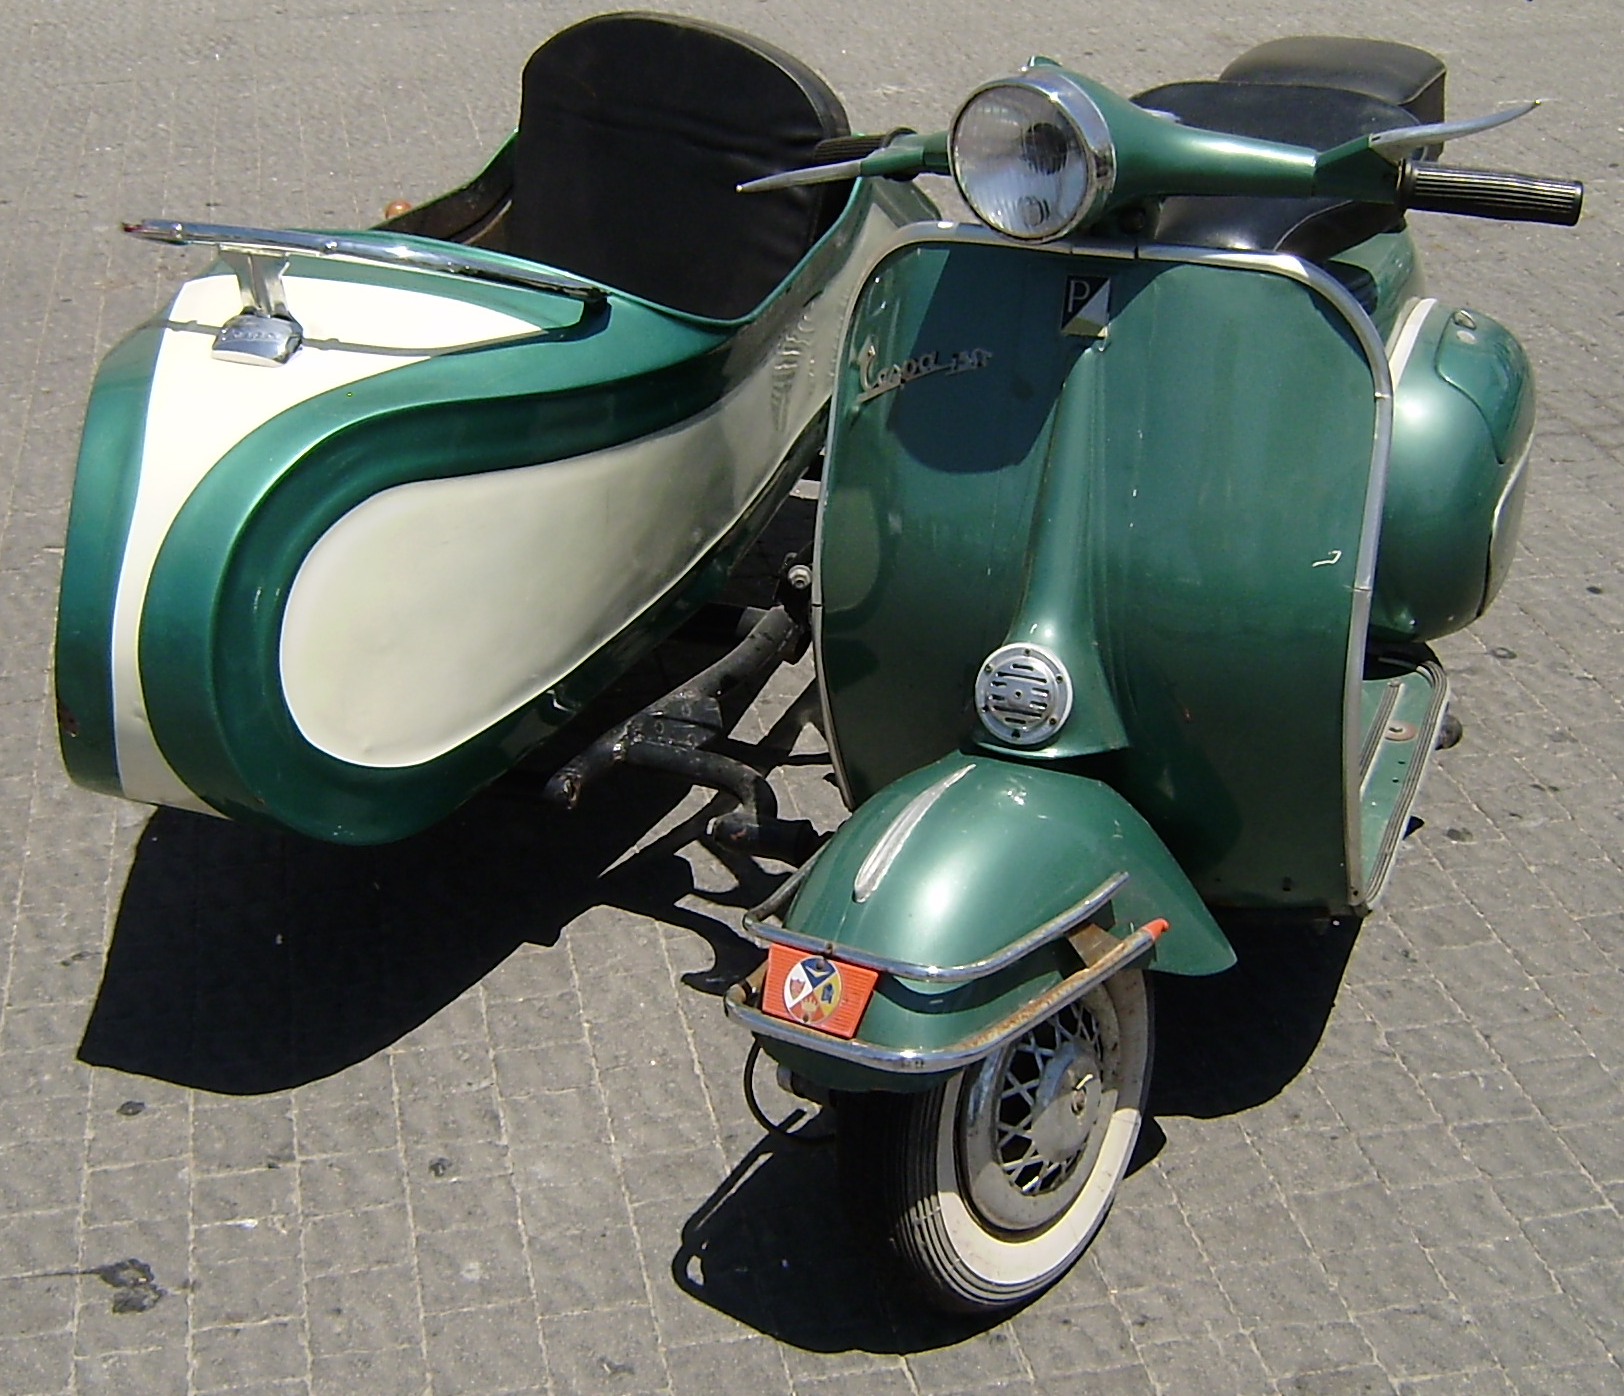 Filevespa Sidecar Wikimedia Commons 650 Yamaha Motorcycle Wiring Diagrams